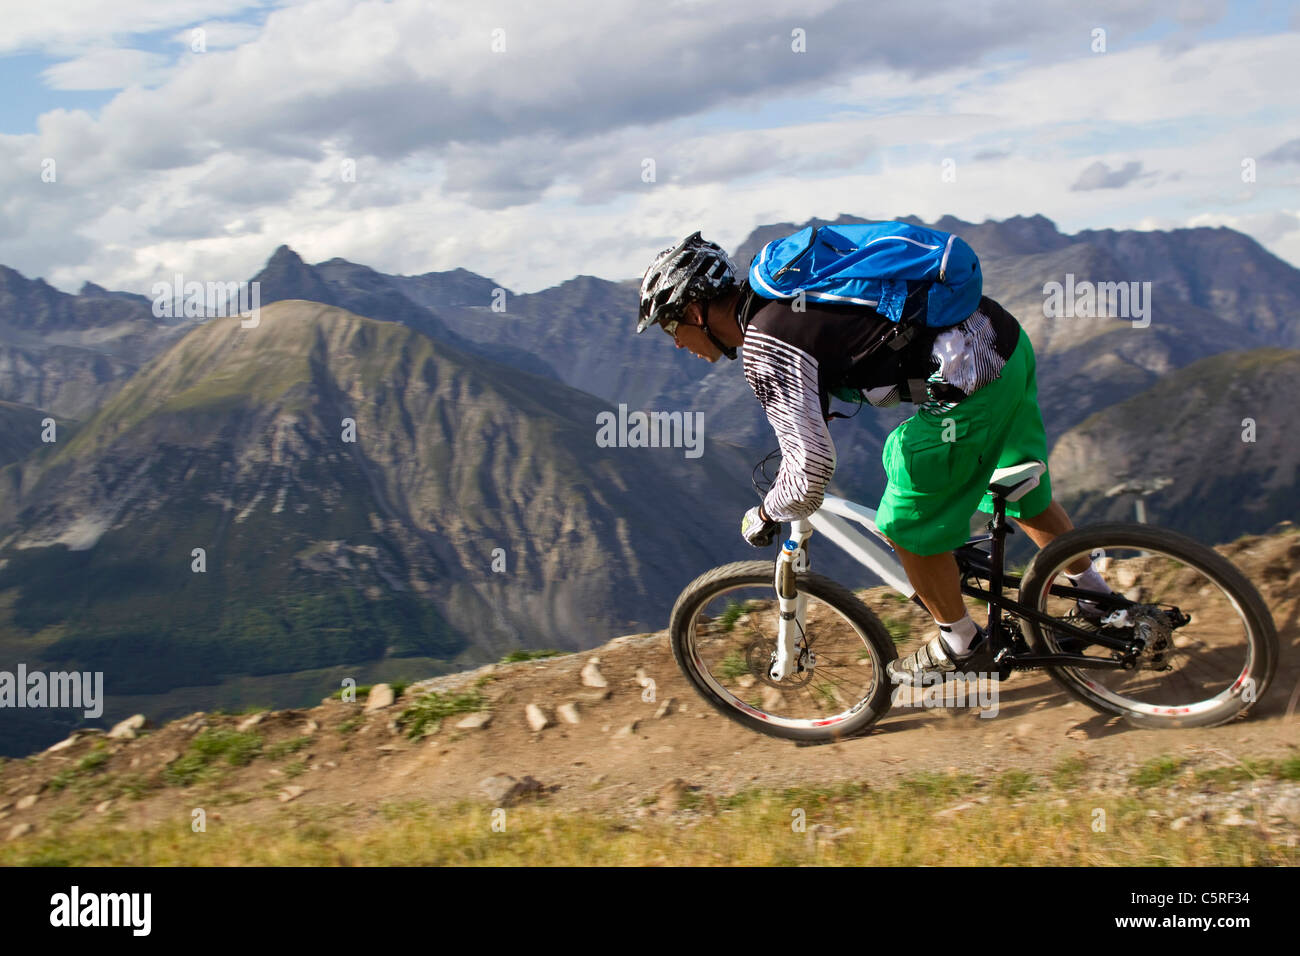 Italy, Livigno, View of man riding mountain bike downhill - Stock Image